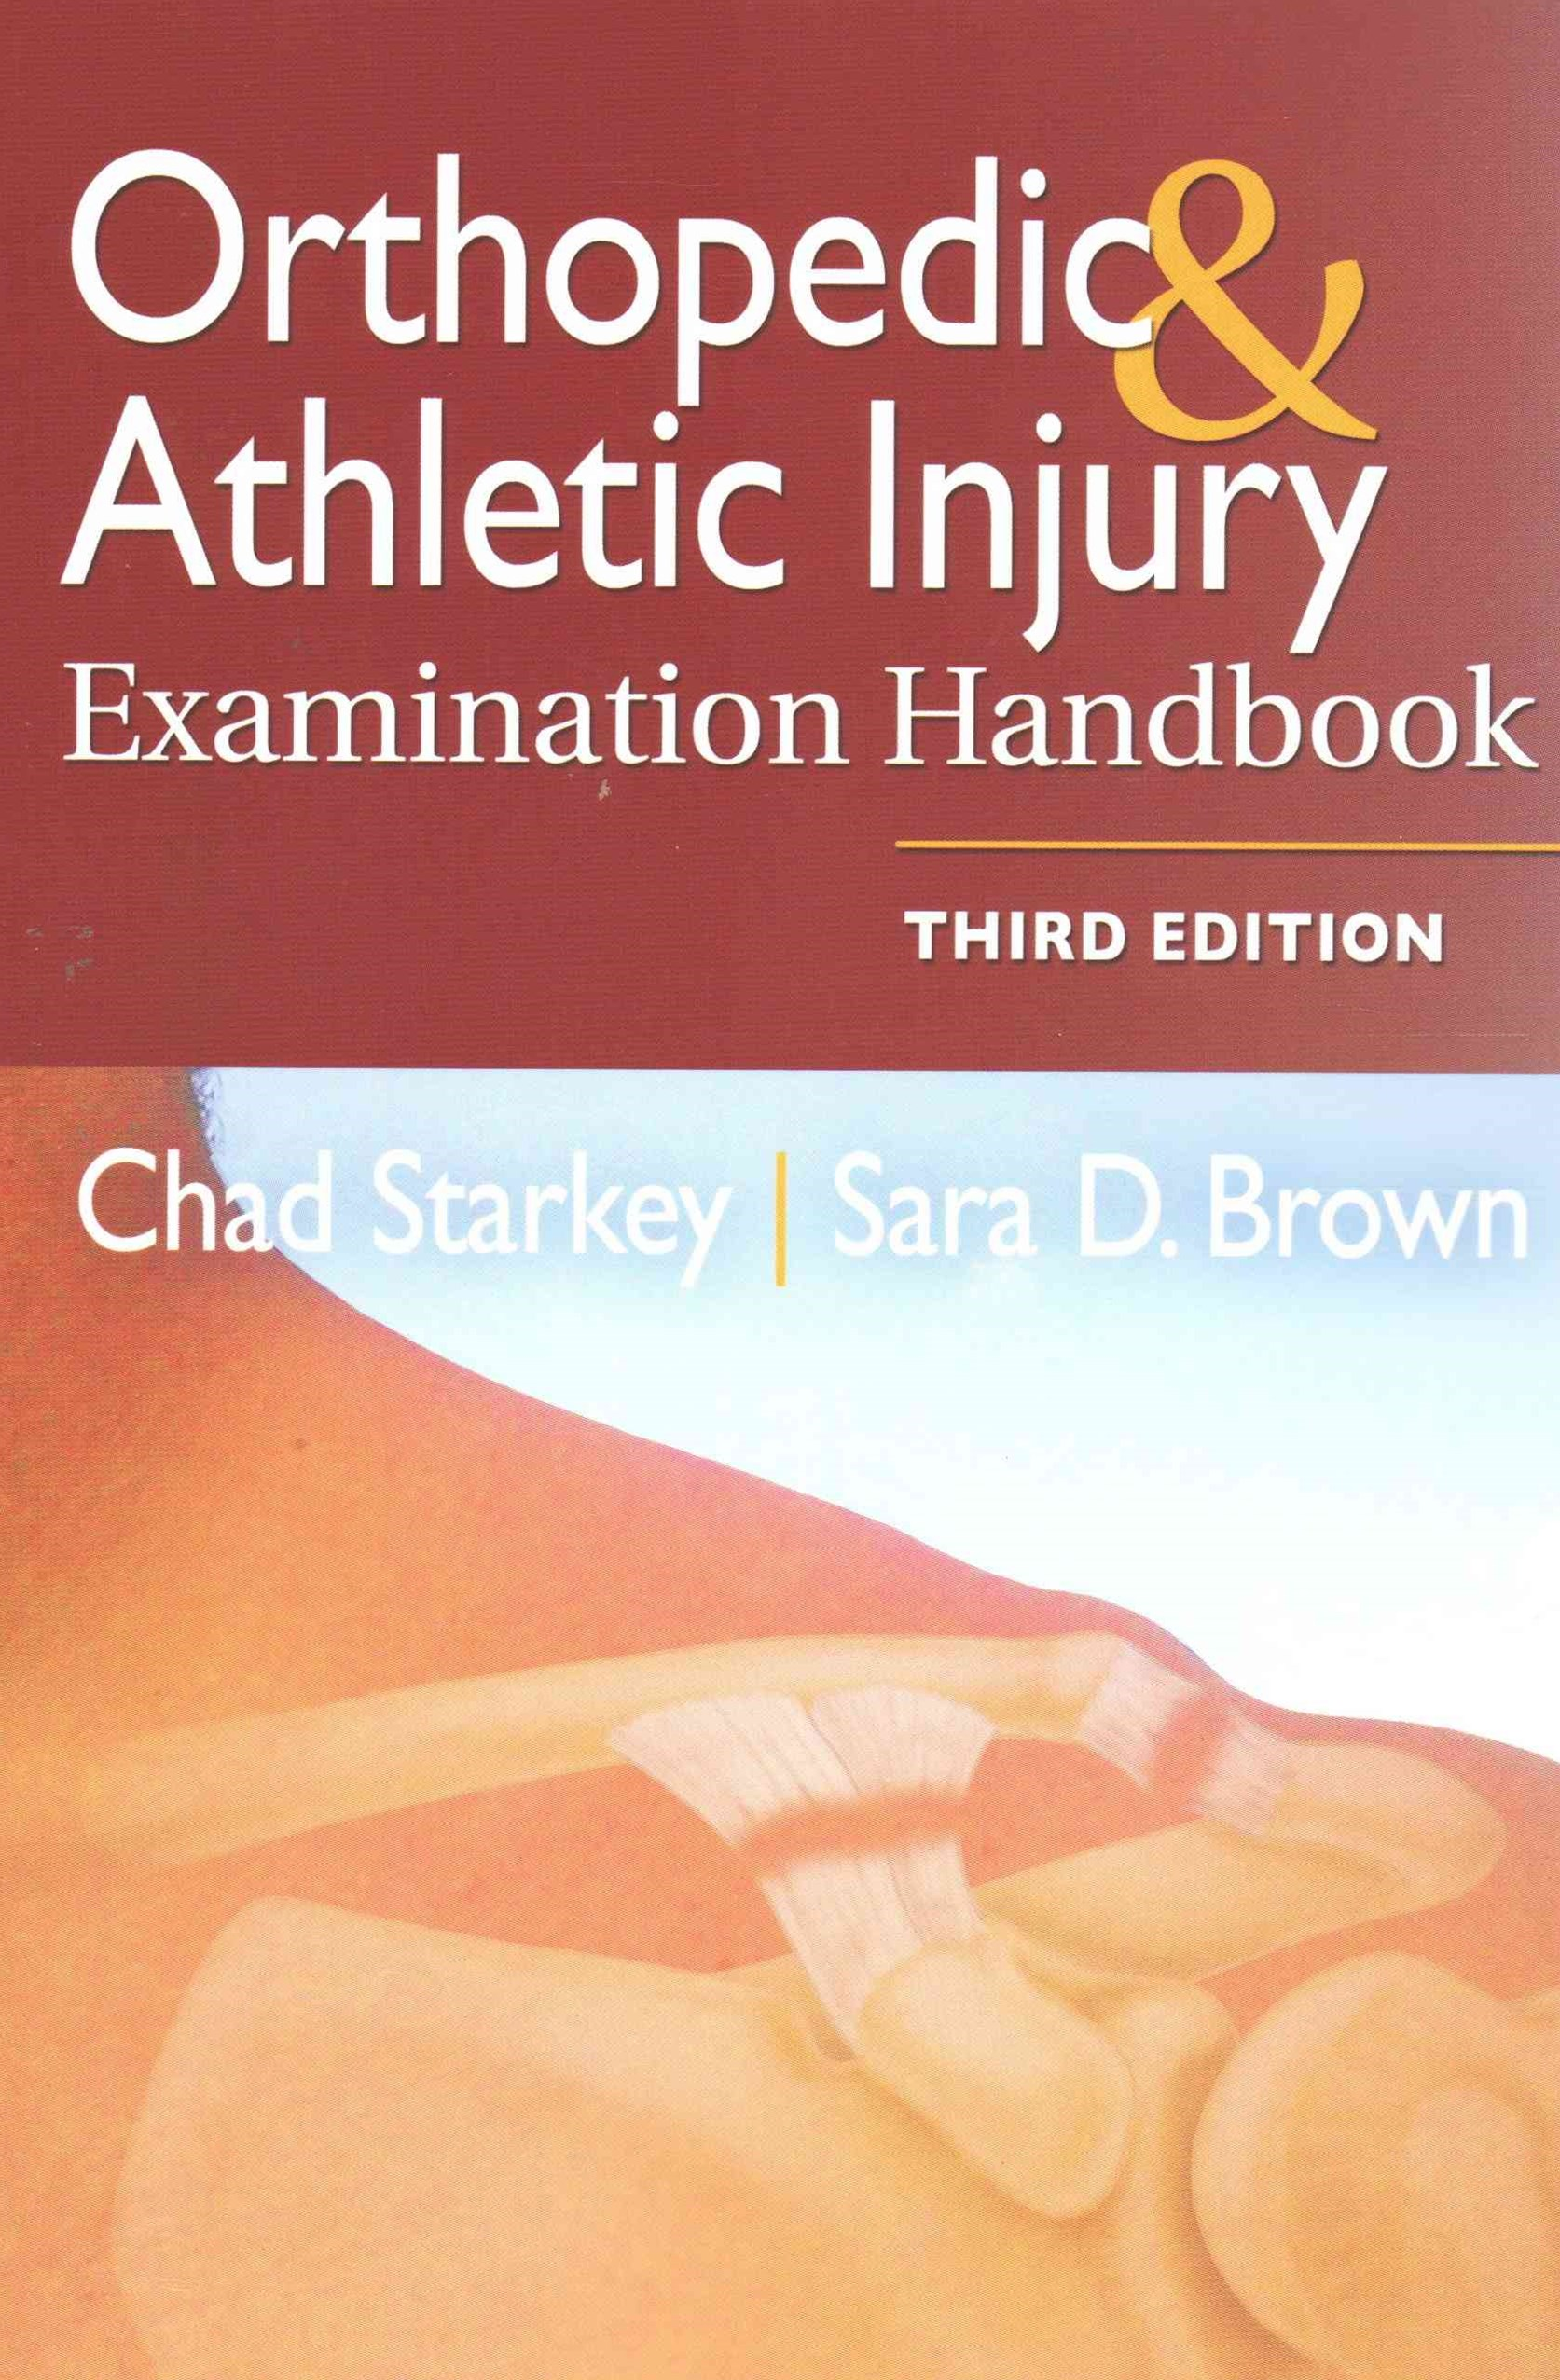 Orthopedic and Athletic Injury Examination Handbook